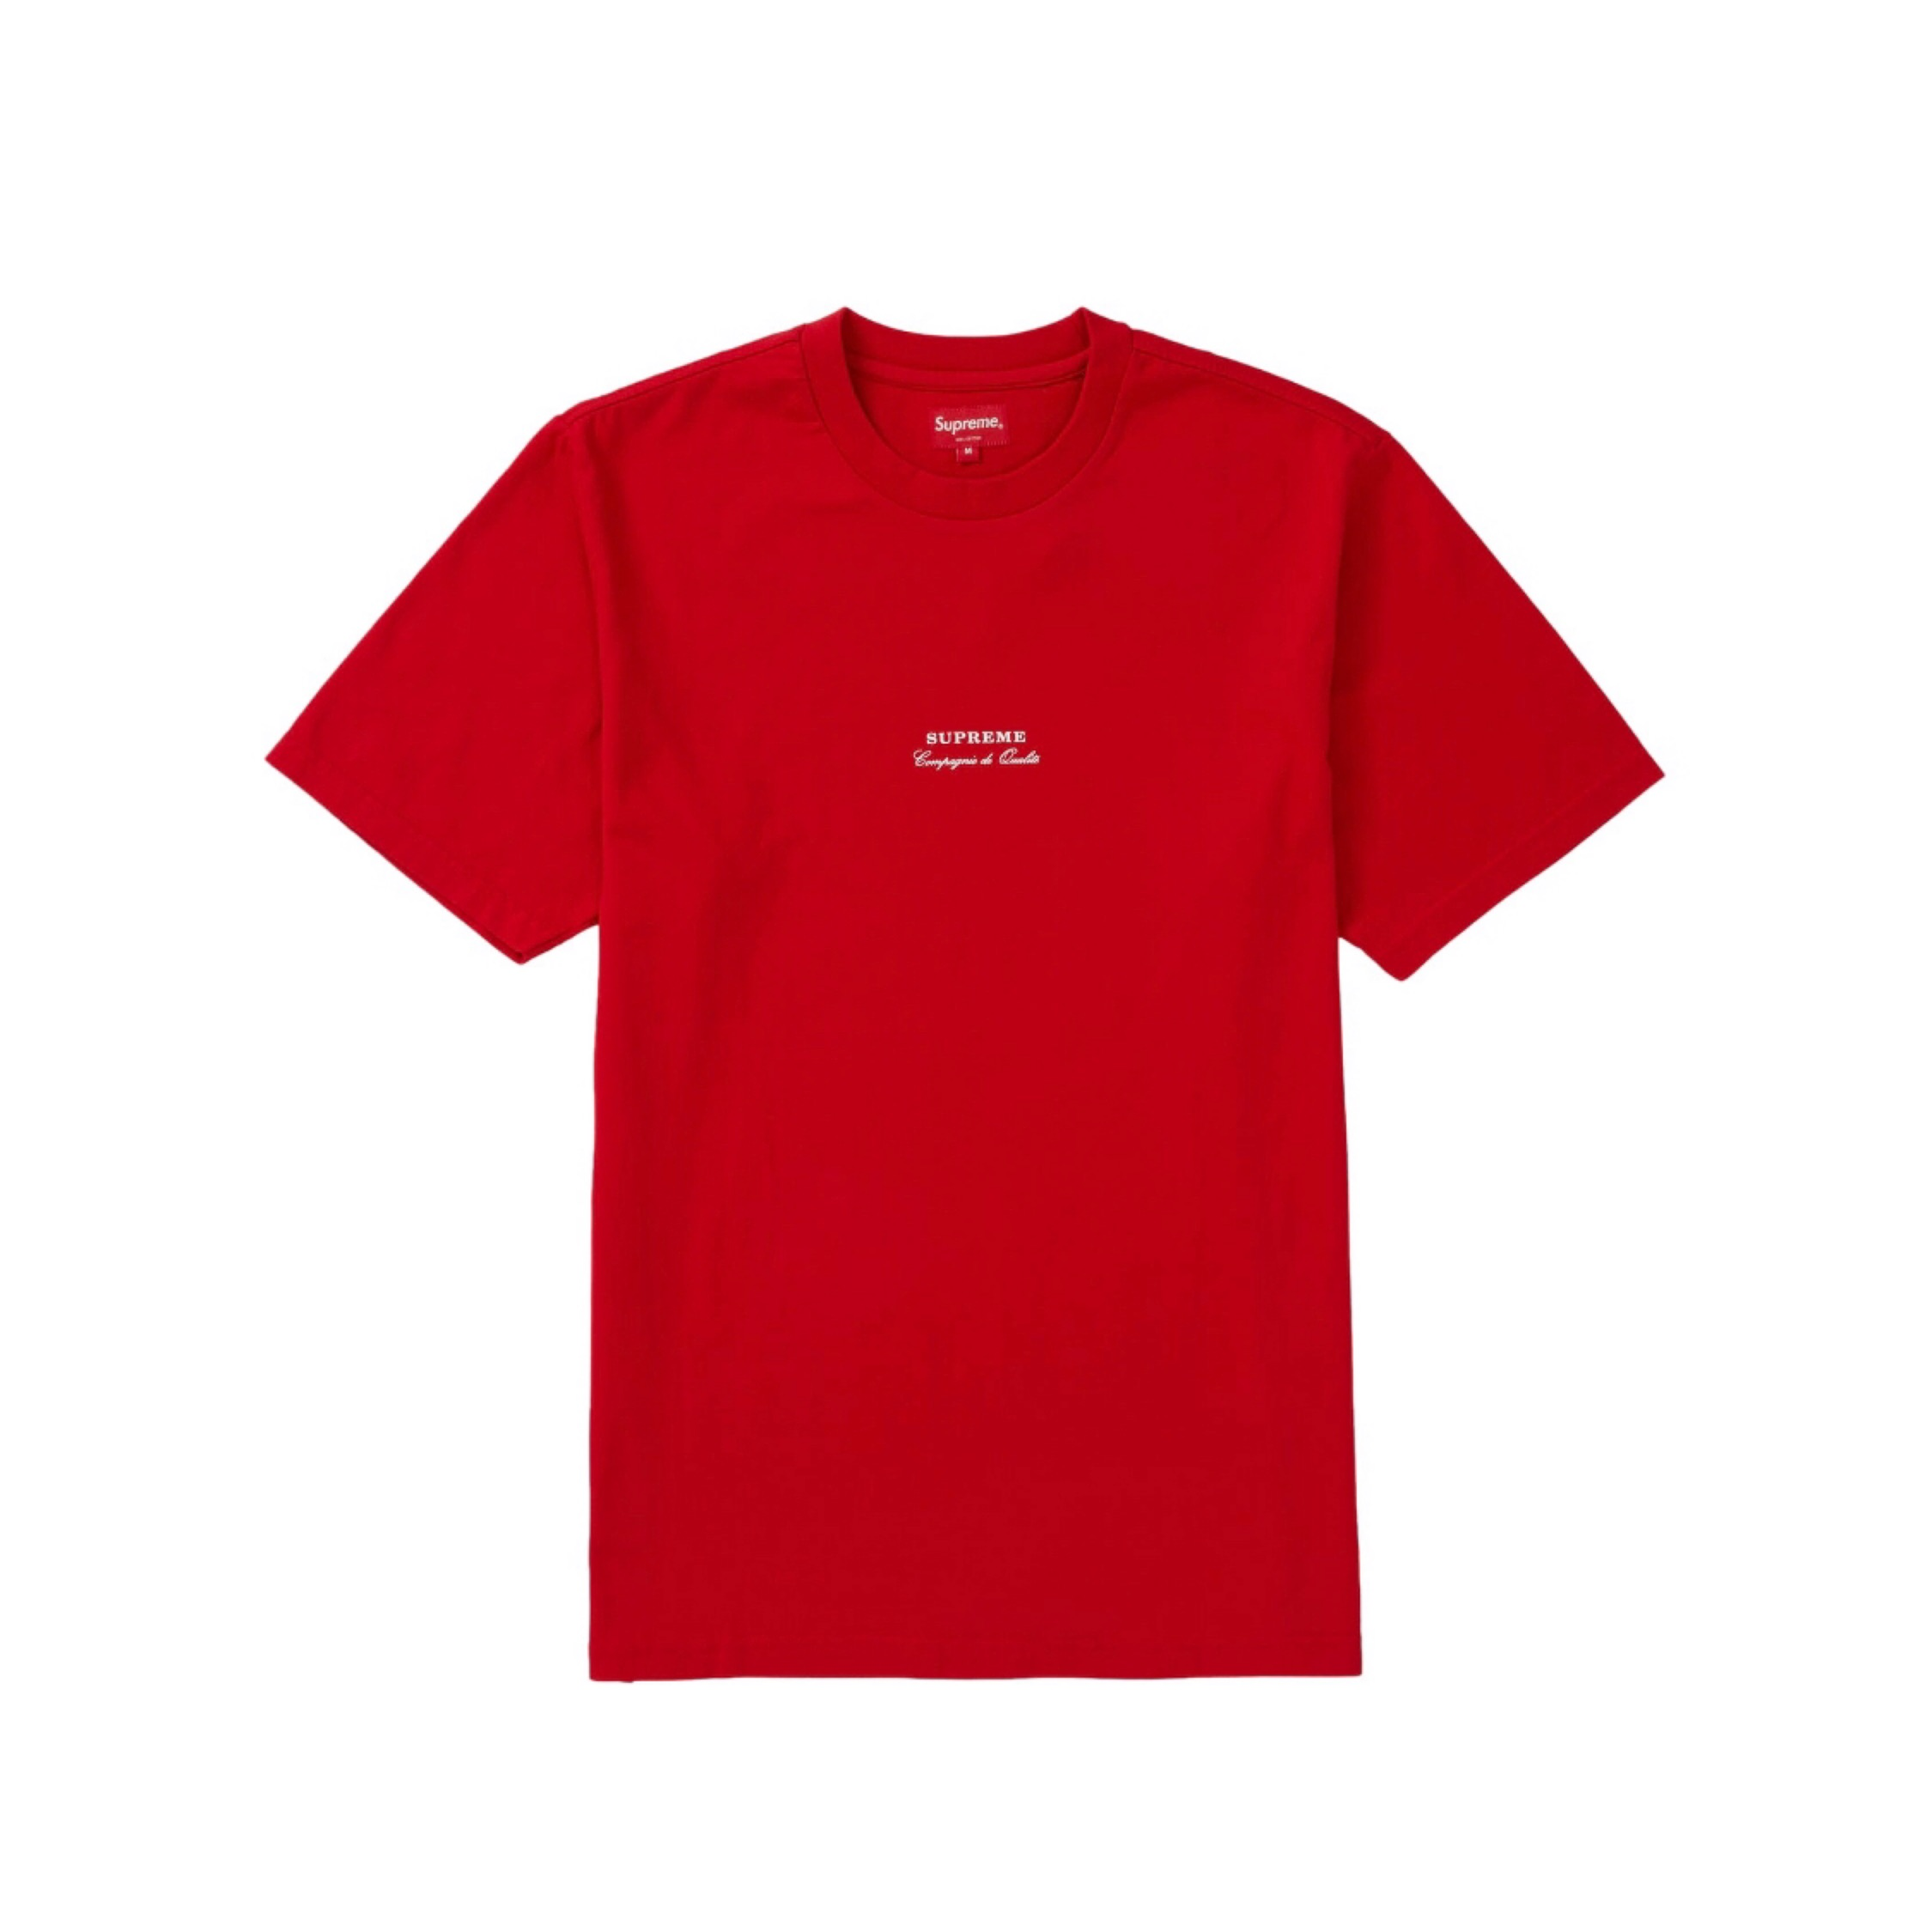 Supreme Qualite Tee In Red Ss19